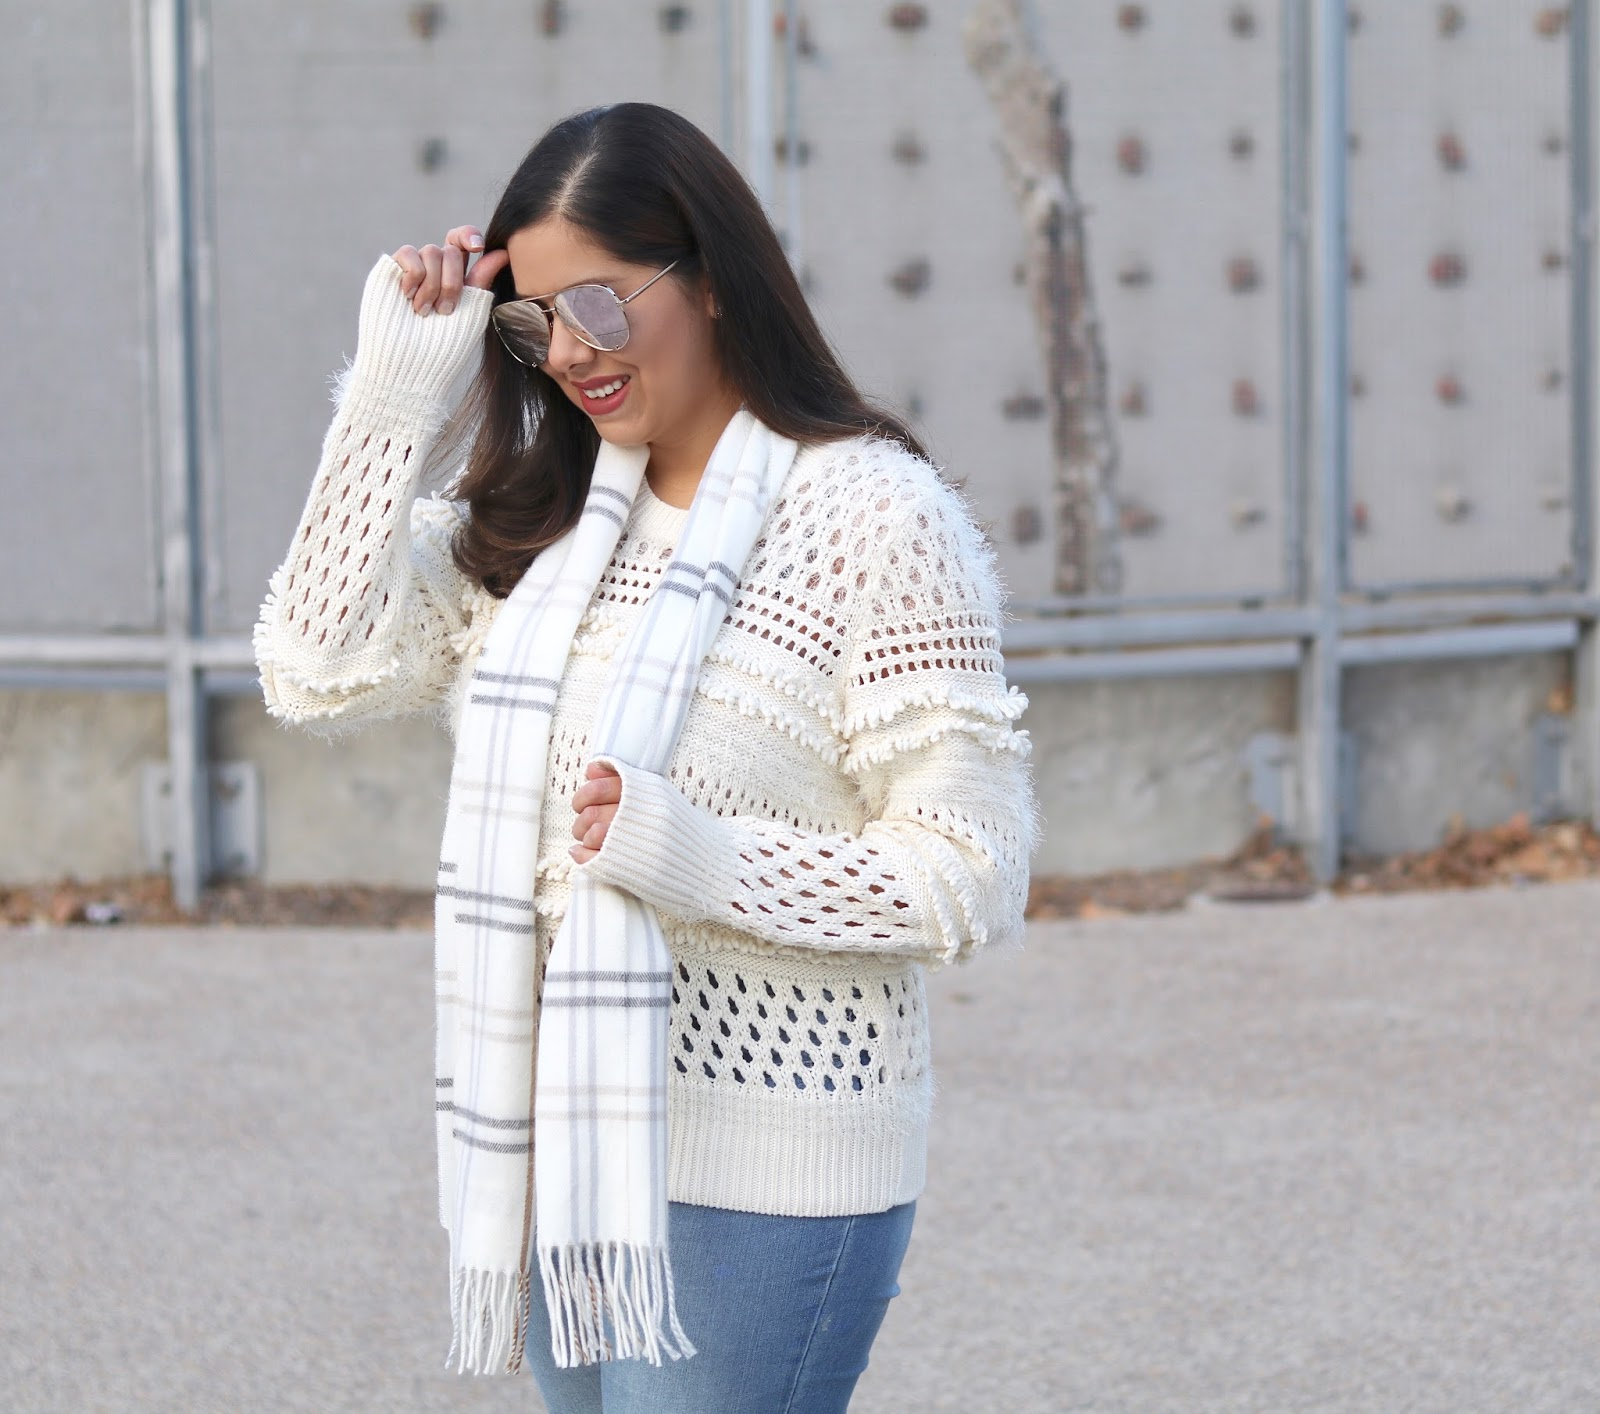 Quay x Desi high key sunglasses, beige cutout shaggy sweater, how to style a beige sweater